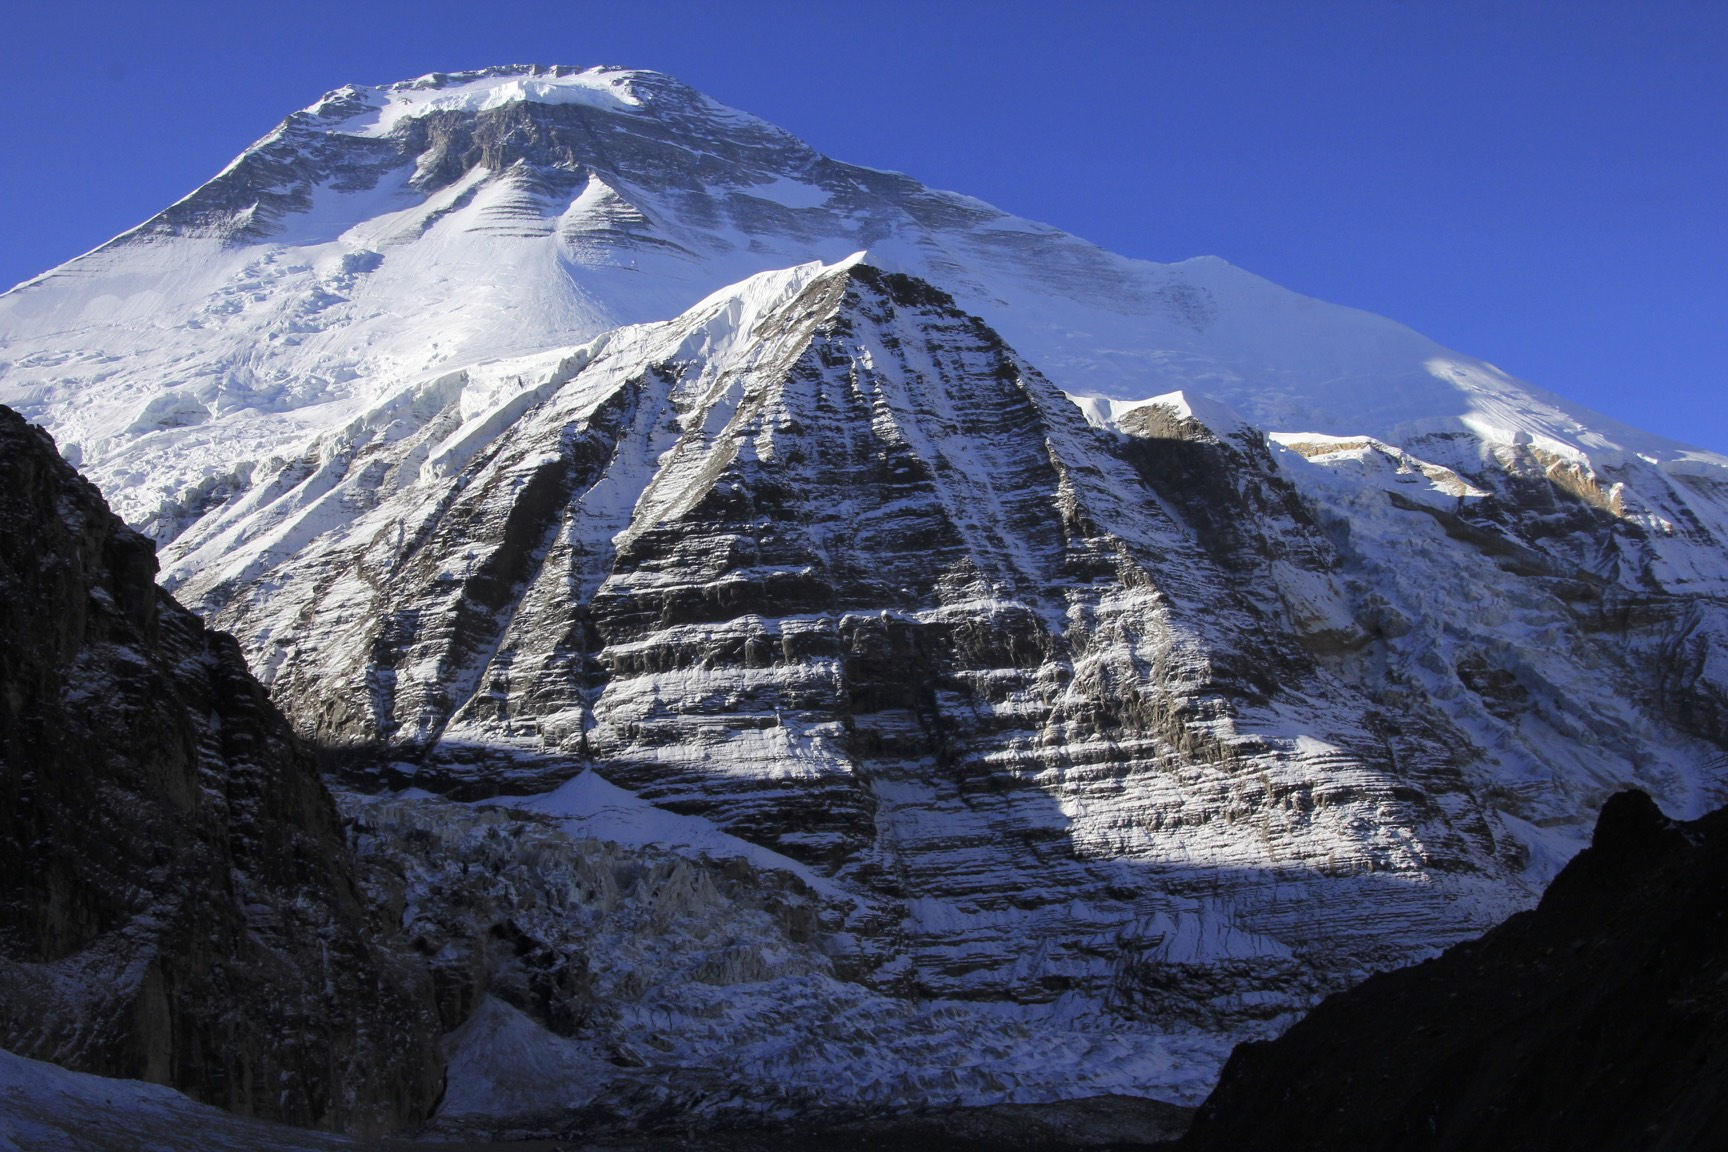 The rocky outcrop below Dhaulagiri is called the Eiger. It is quite high but looks small in front of the giant bulk of Dhaulagiri I.